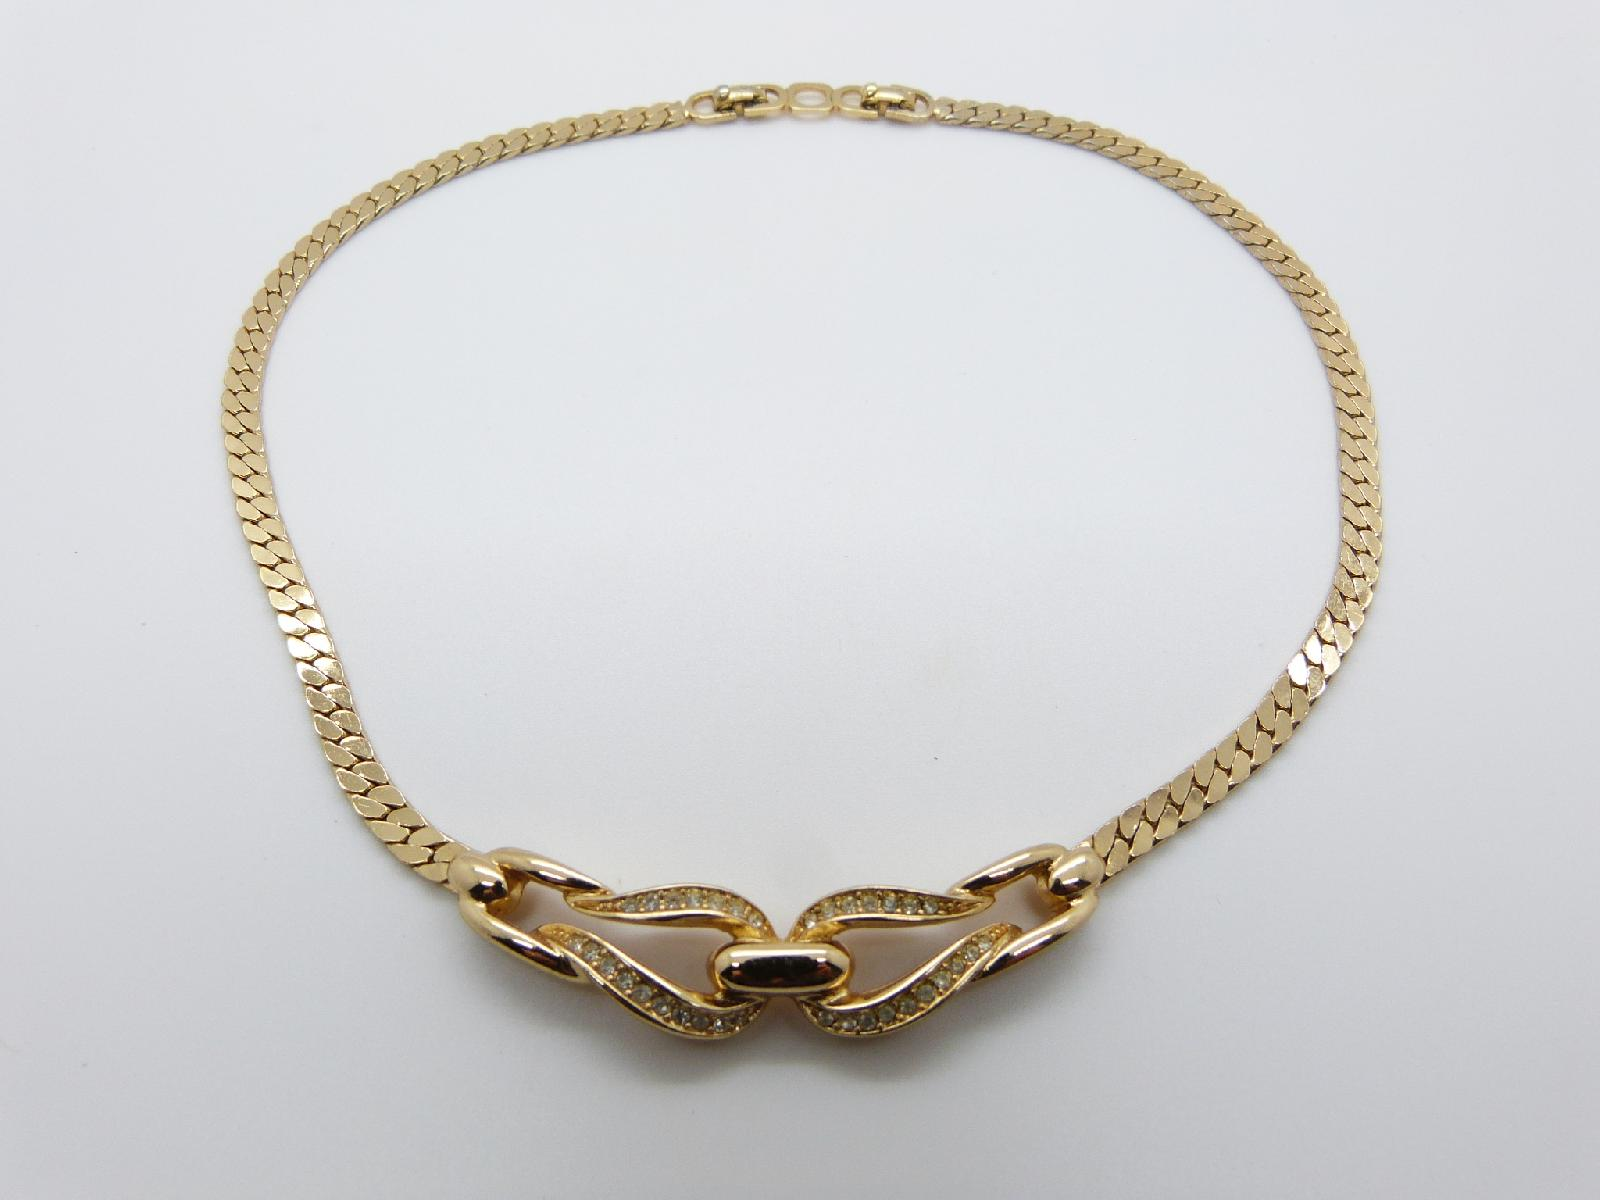 Vintage 80s Signed Christian Dior Pave Set Crystal Gold Plated Necklace Fab